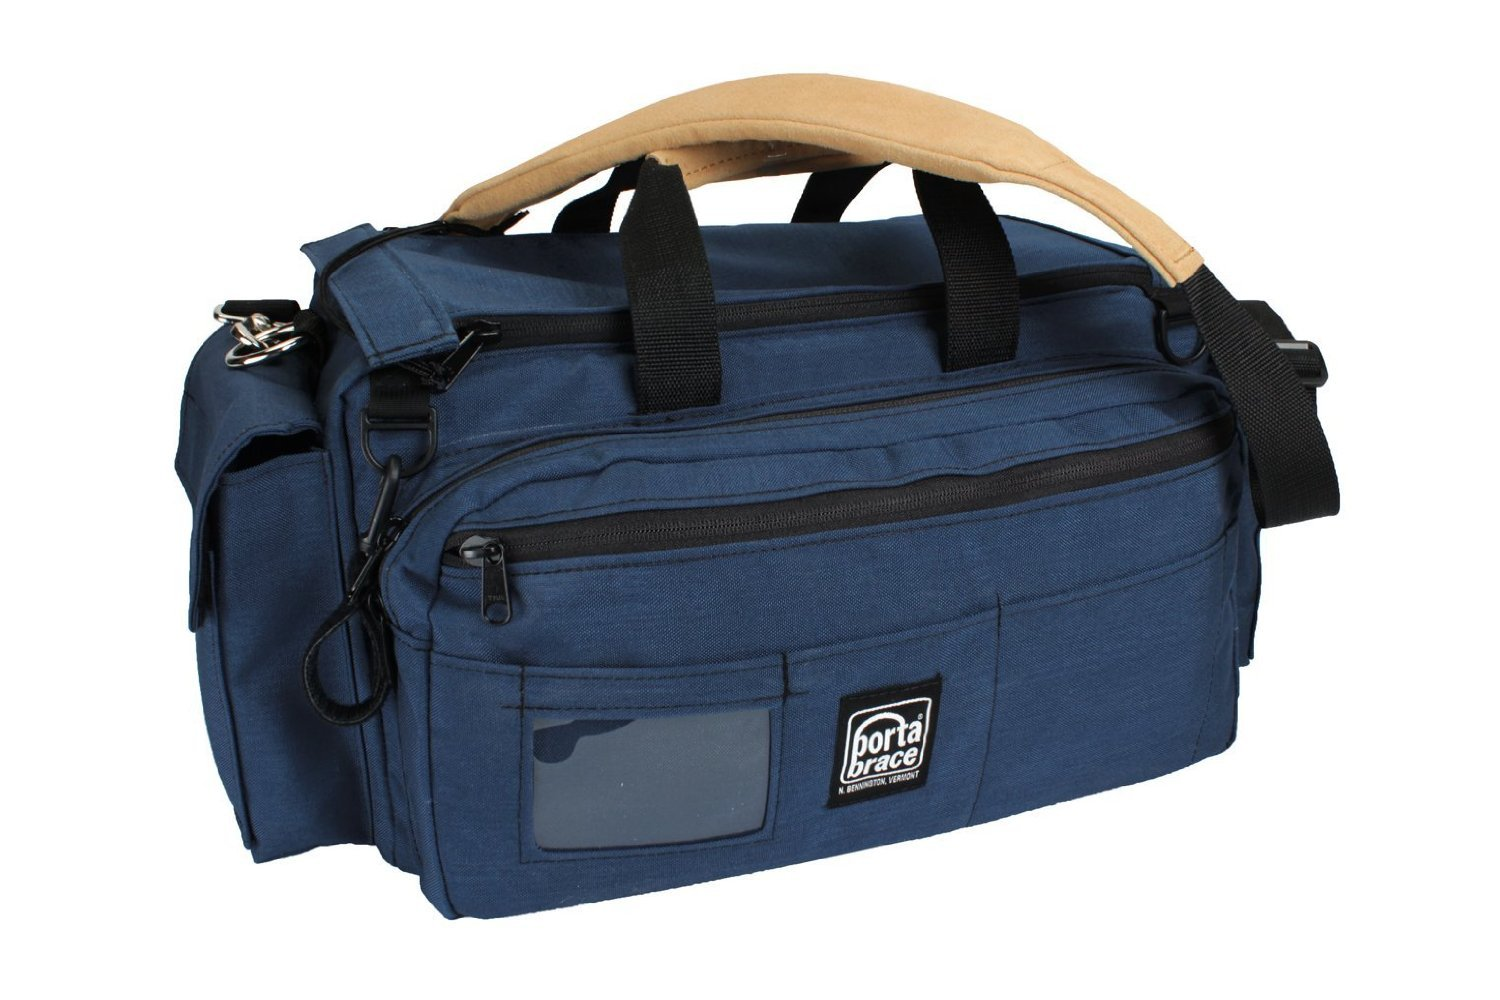 Portabrace CAR-2 Cargo Case (Blue) [並行輸入品]   B0160M07RM